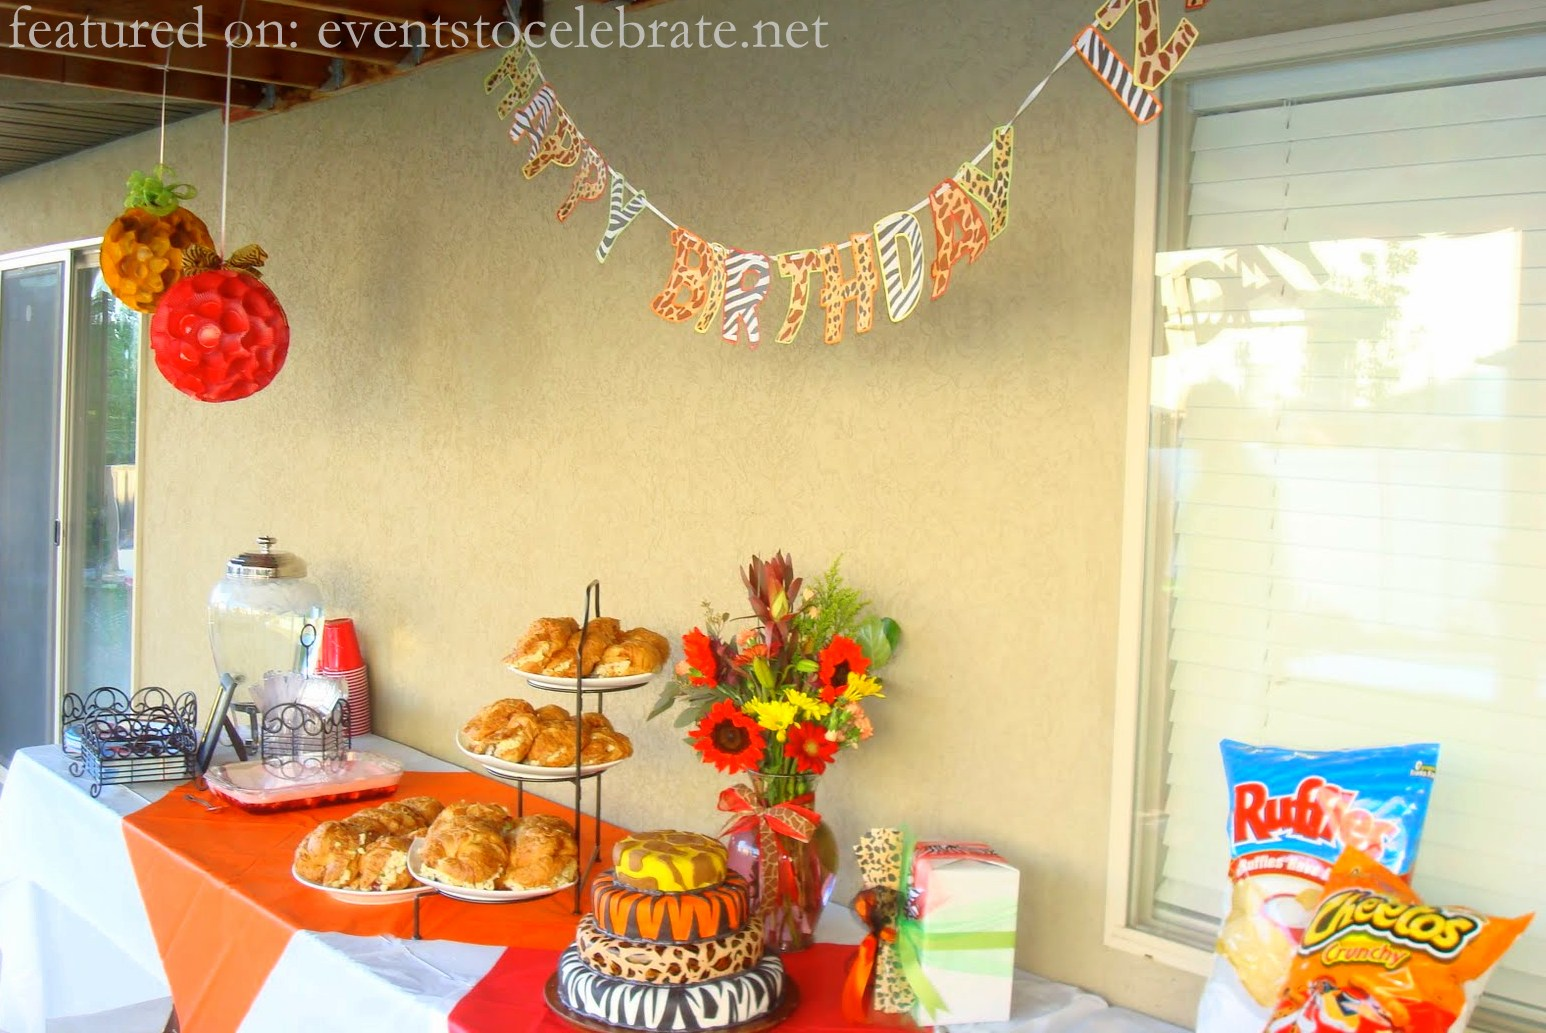 decor decorations moms ideas theme birthday photo party jungle dsc decoration aicaevents passionate